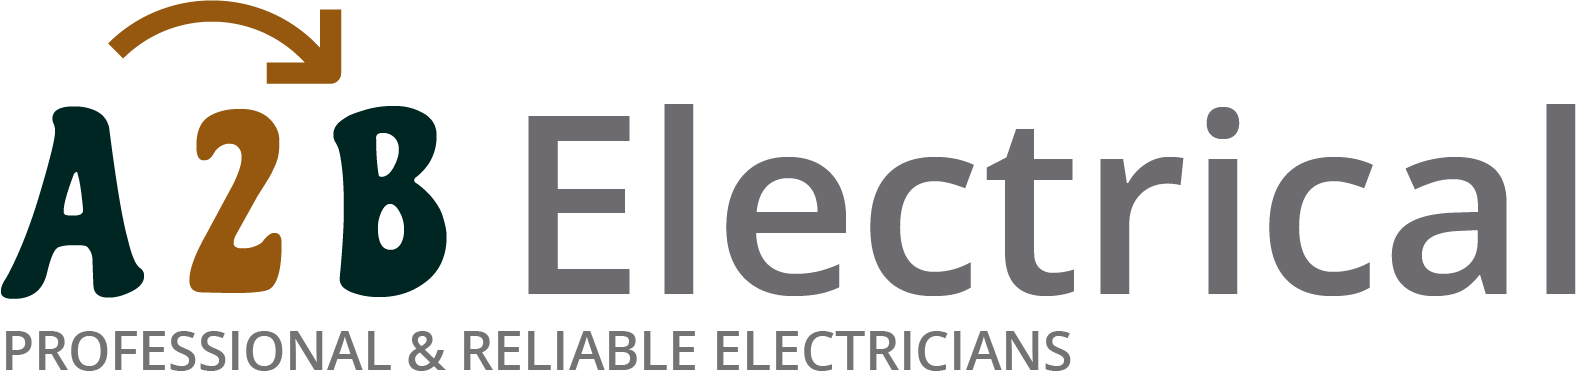 If you have electrical wiring problems in Holland Park, we can provide an electrician to have a look for you.